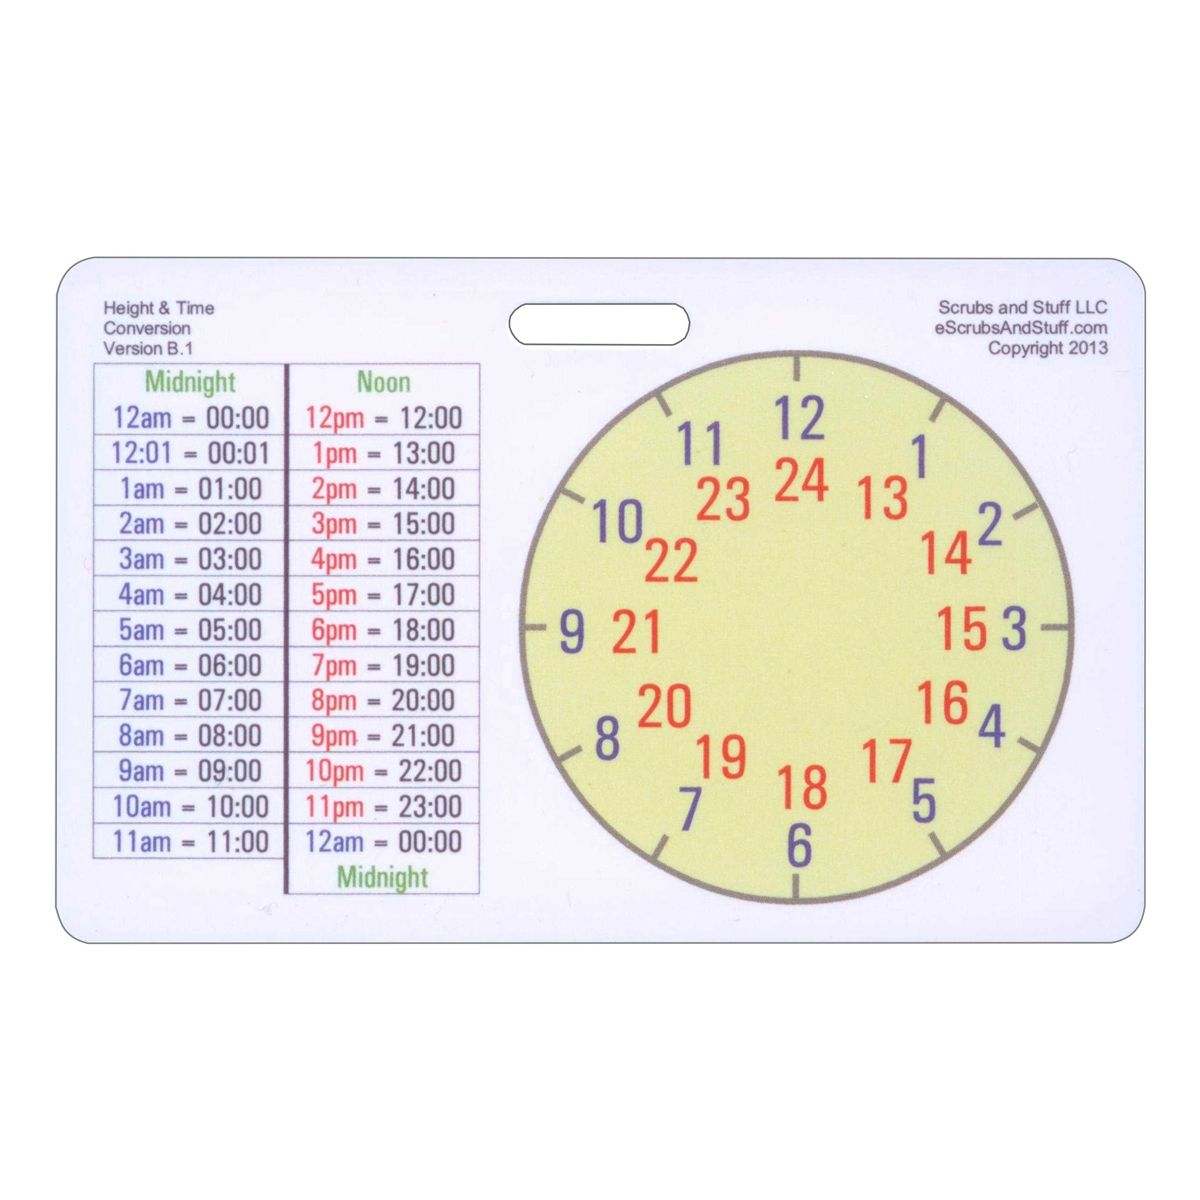 height and time conversion horizontal badge card helpful medical